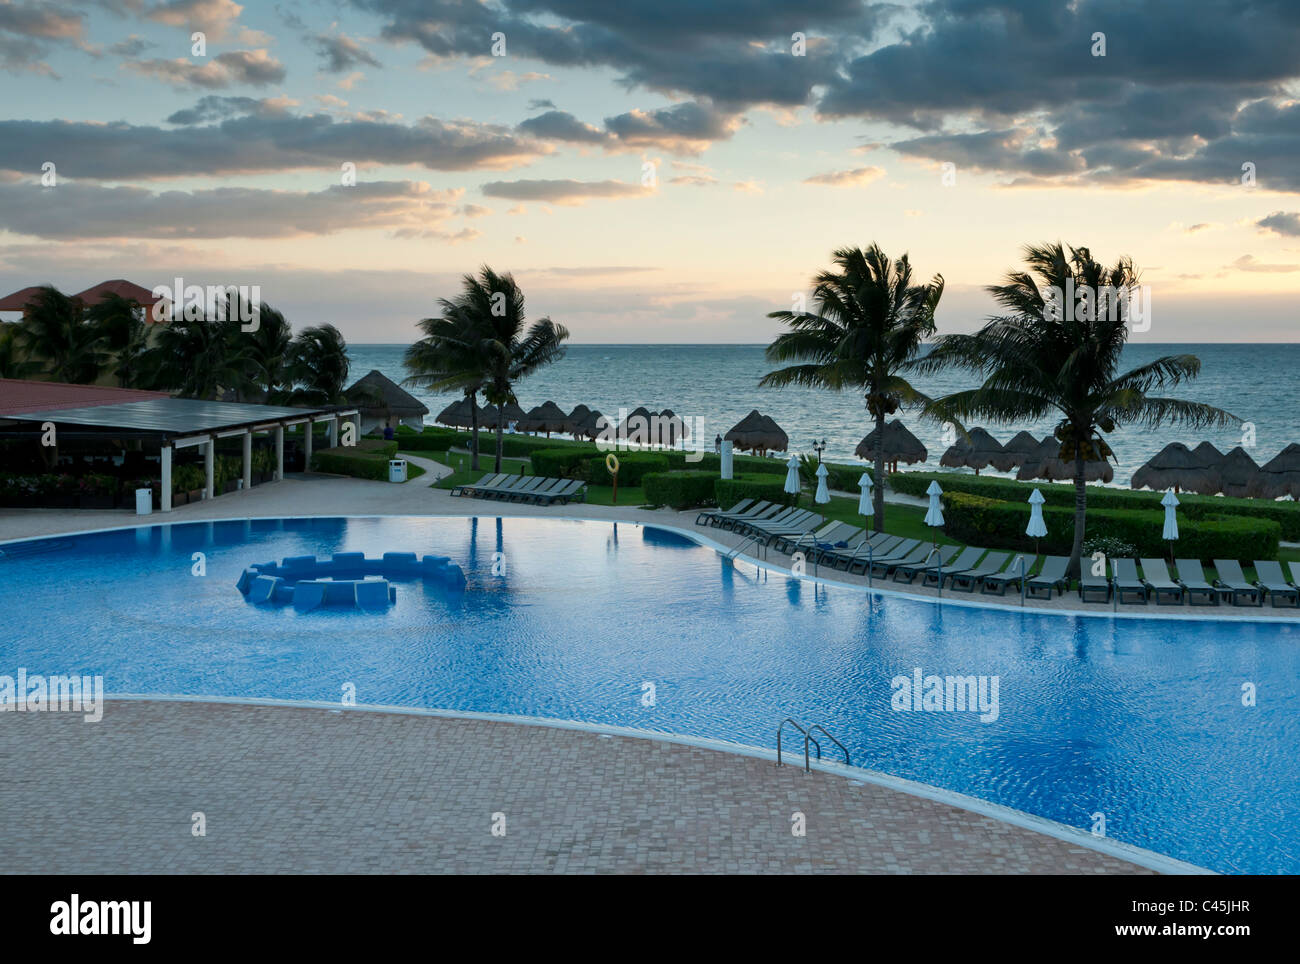 sunrise over the caribbean sea at a vacation resort on the. Black Bedroom Furniture Sets. Home Design Ideas